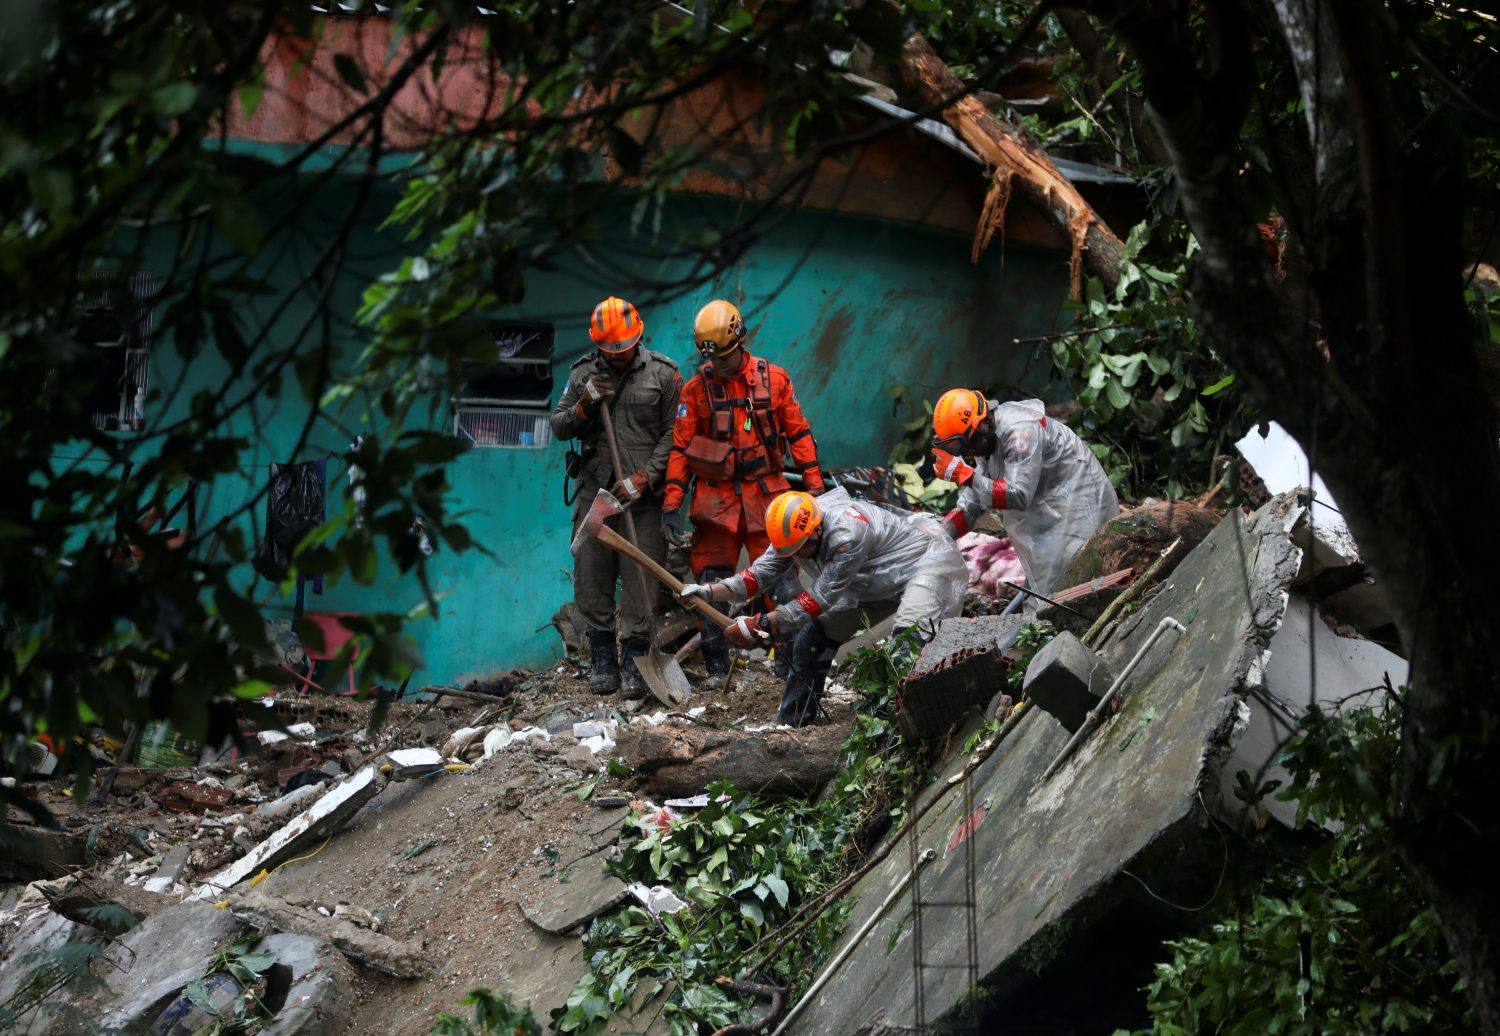 Firefighters work at the site of a mudslide after a heavy rain at the Babilonia slum in Rio de Janeiro, Brazil, April 9, 2019. REUTERS/Pilar Olivares